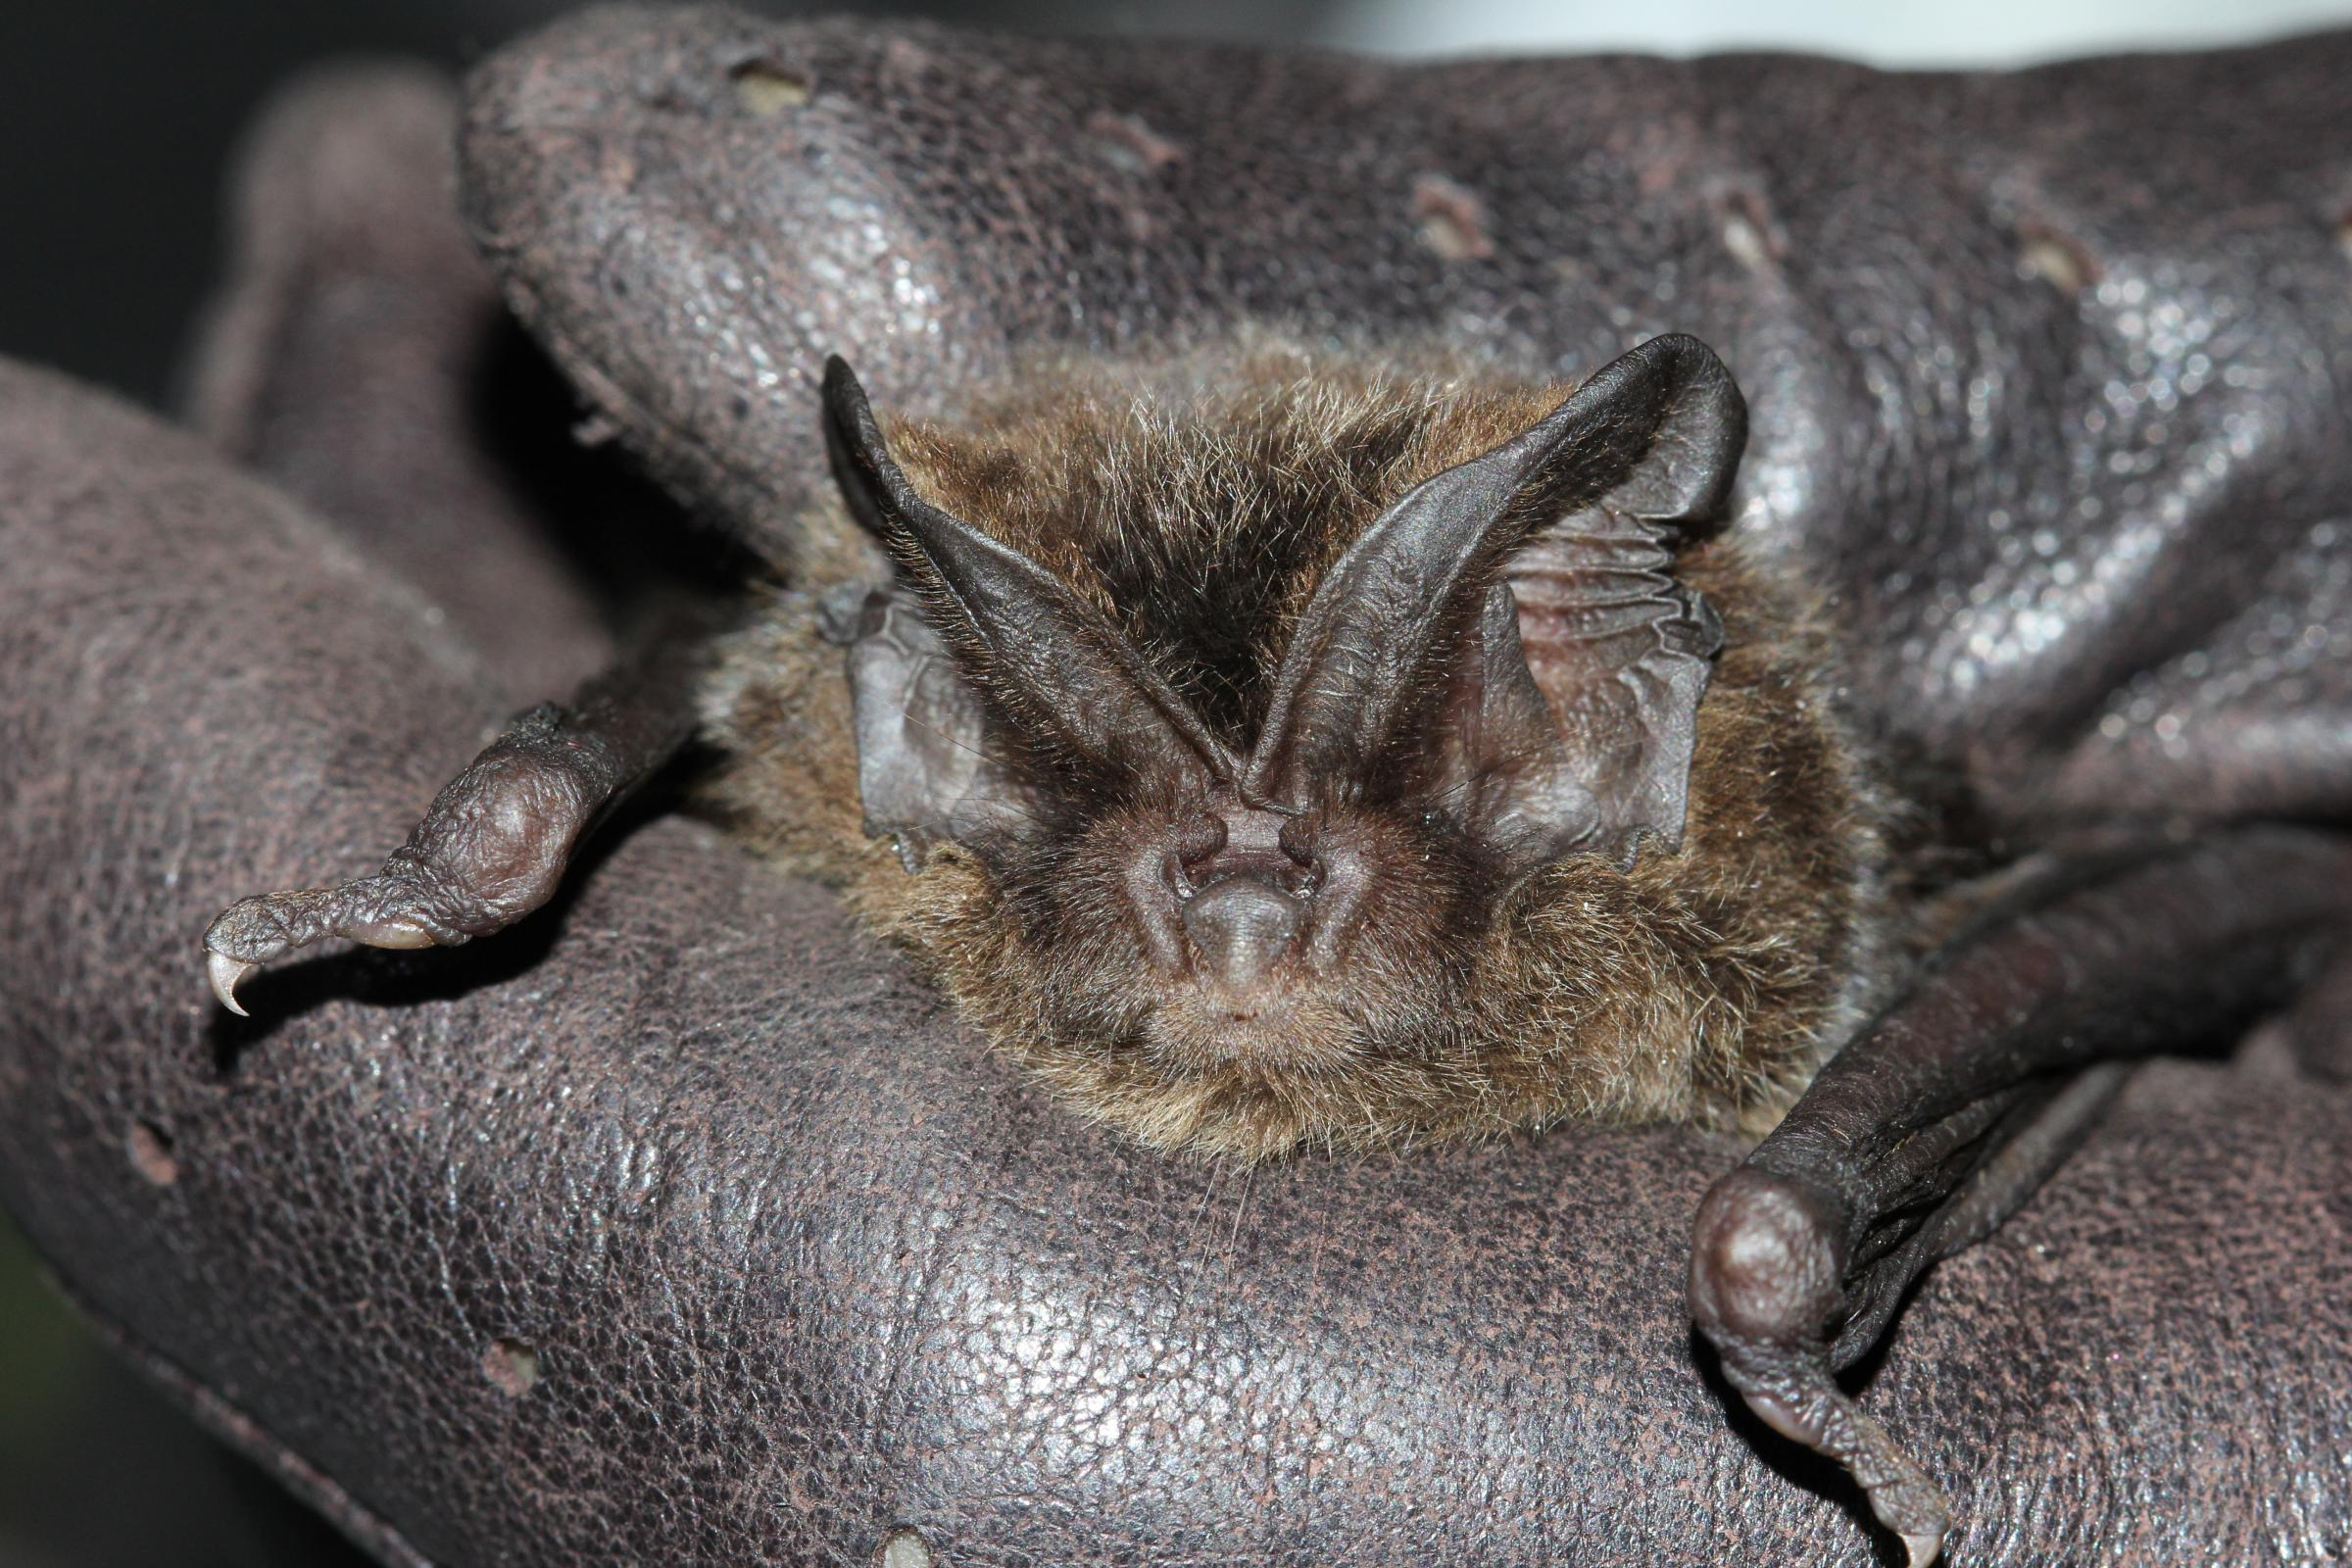 The Barbestelle Bat has not been seen in London since the late 1950s